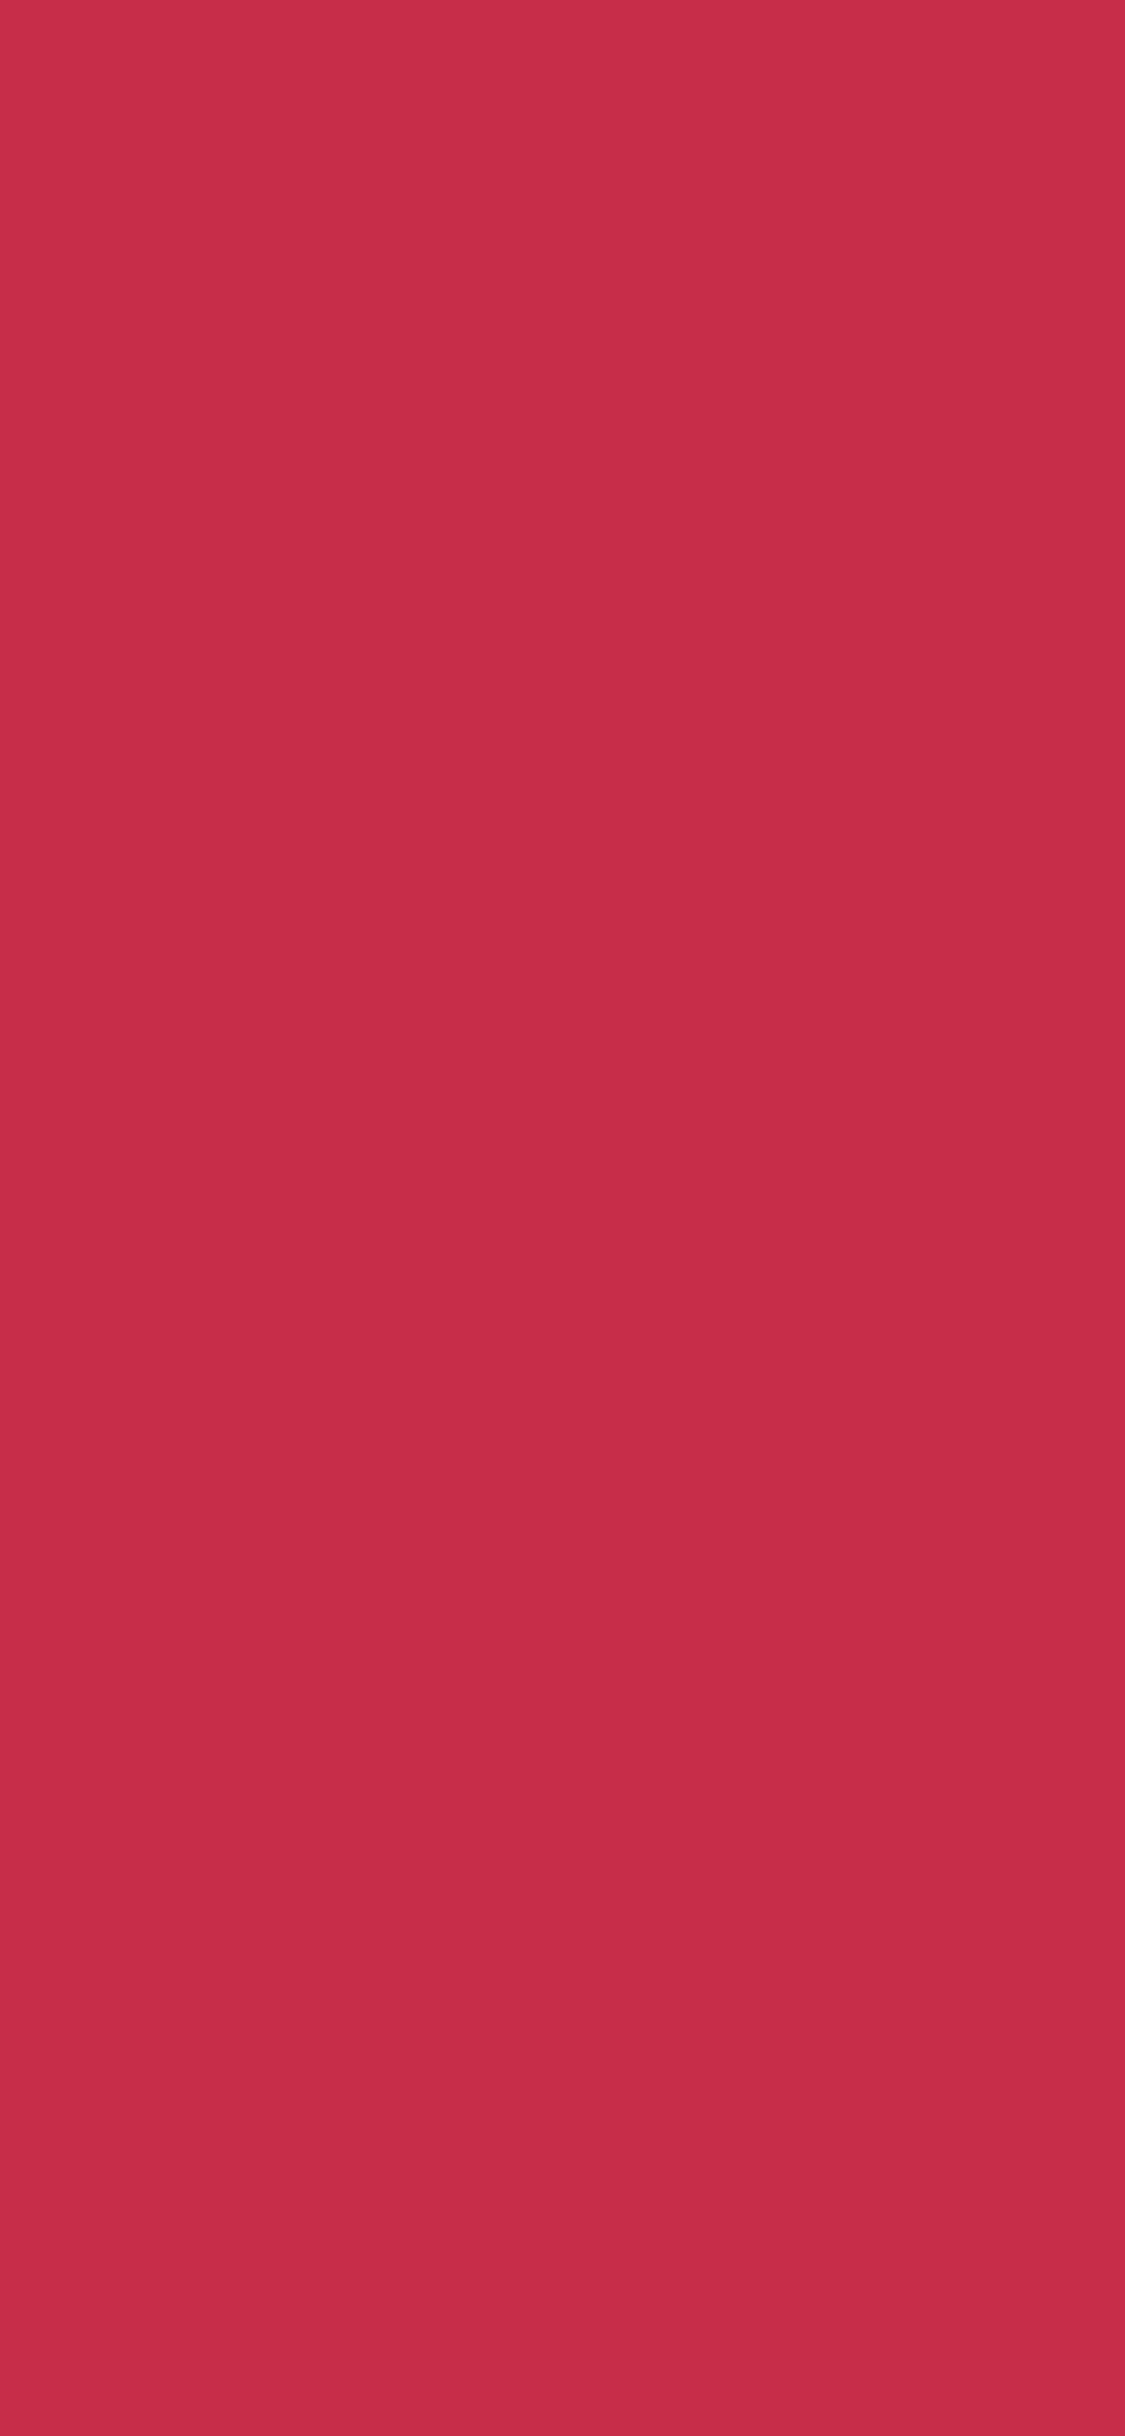 1125x2436 French Raspberry Solid Color Background